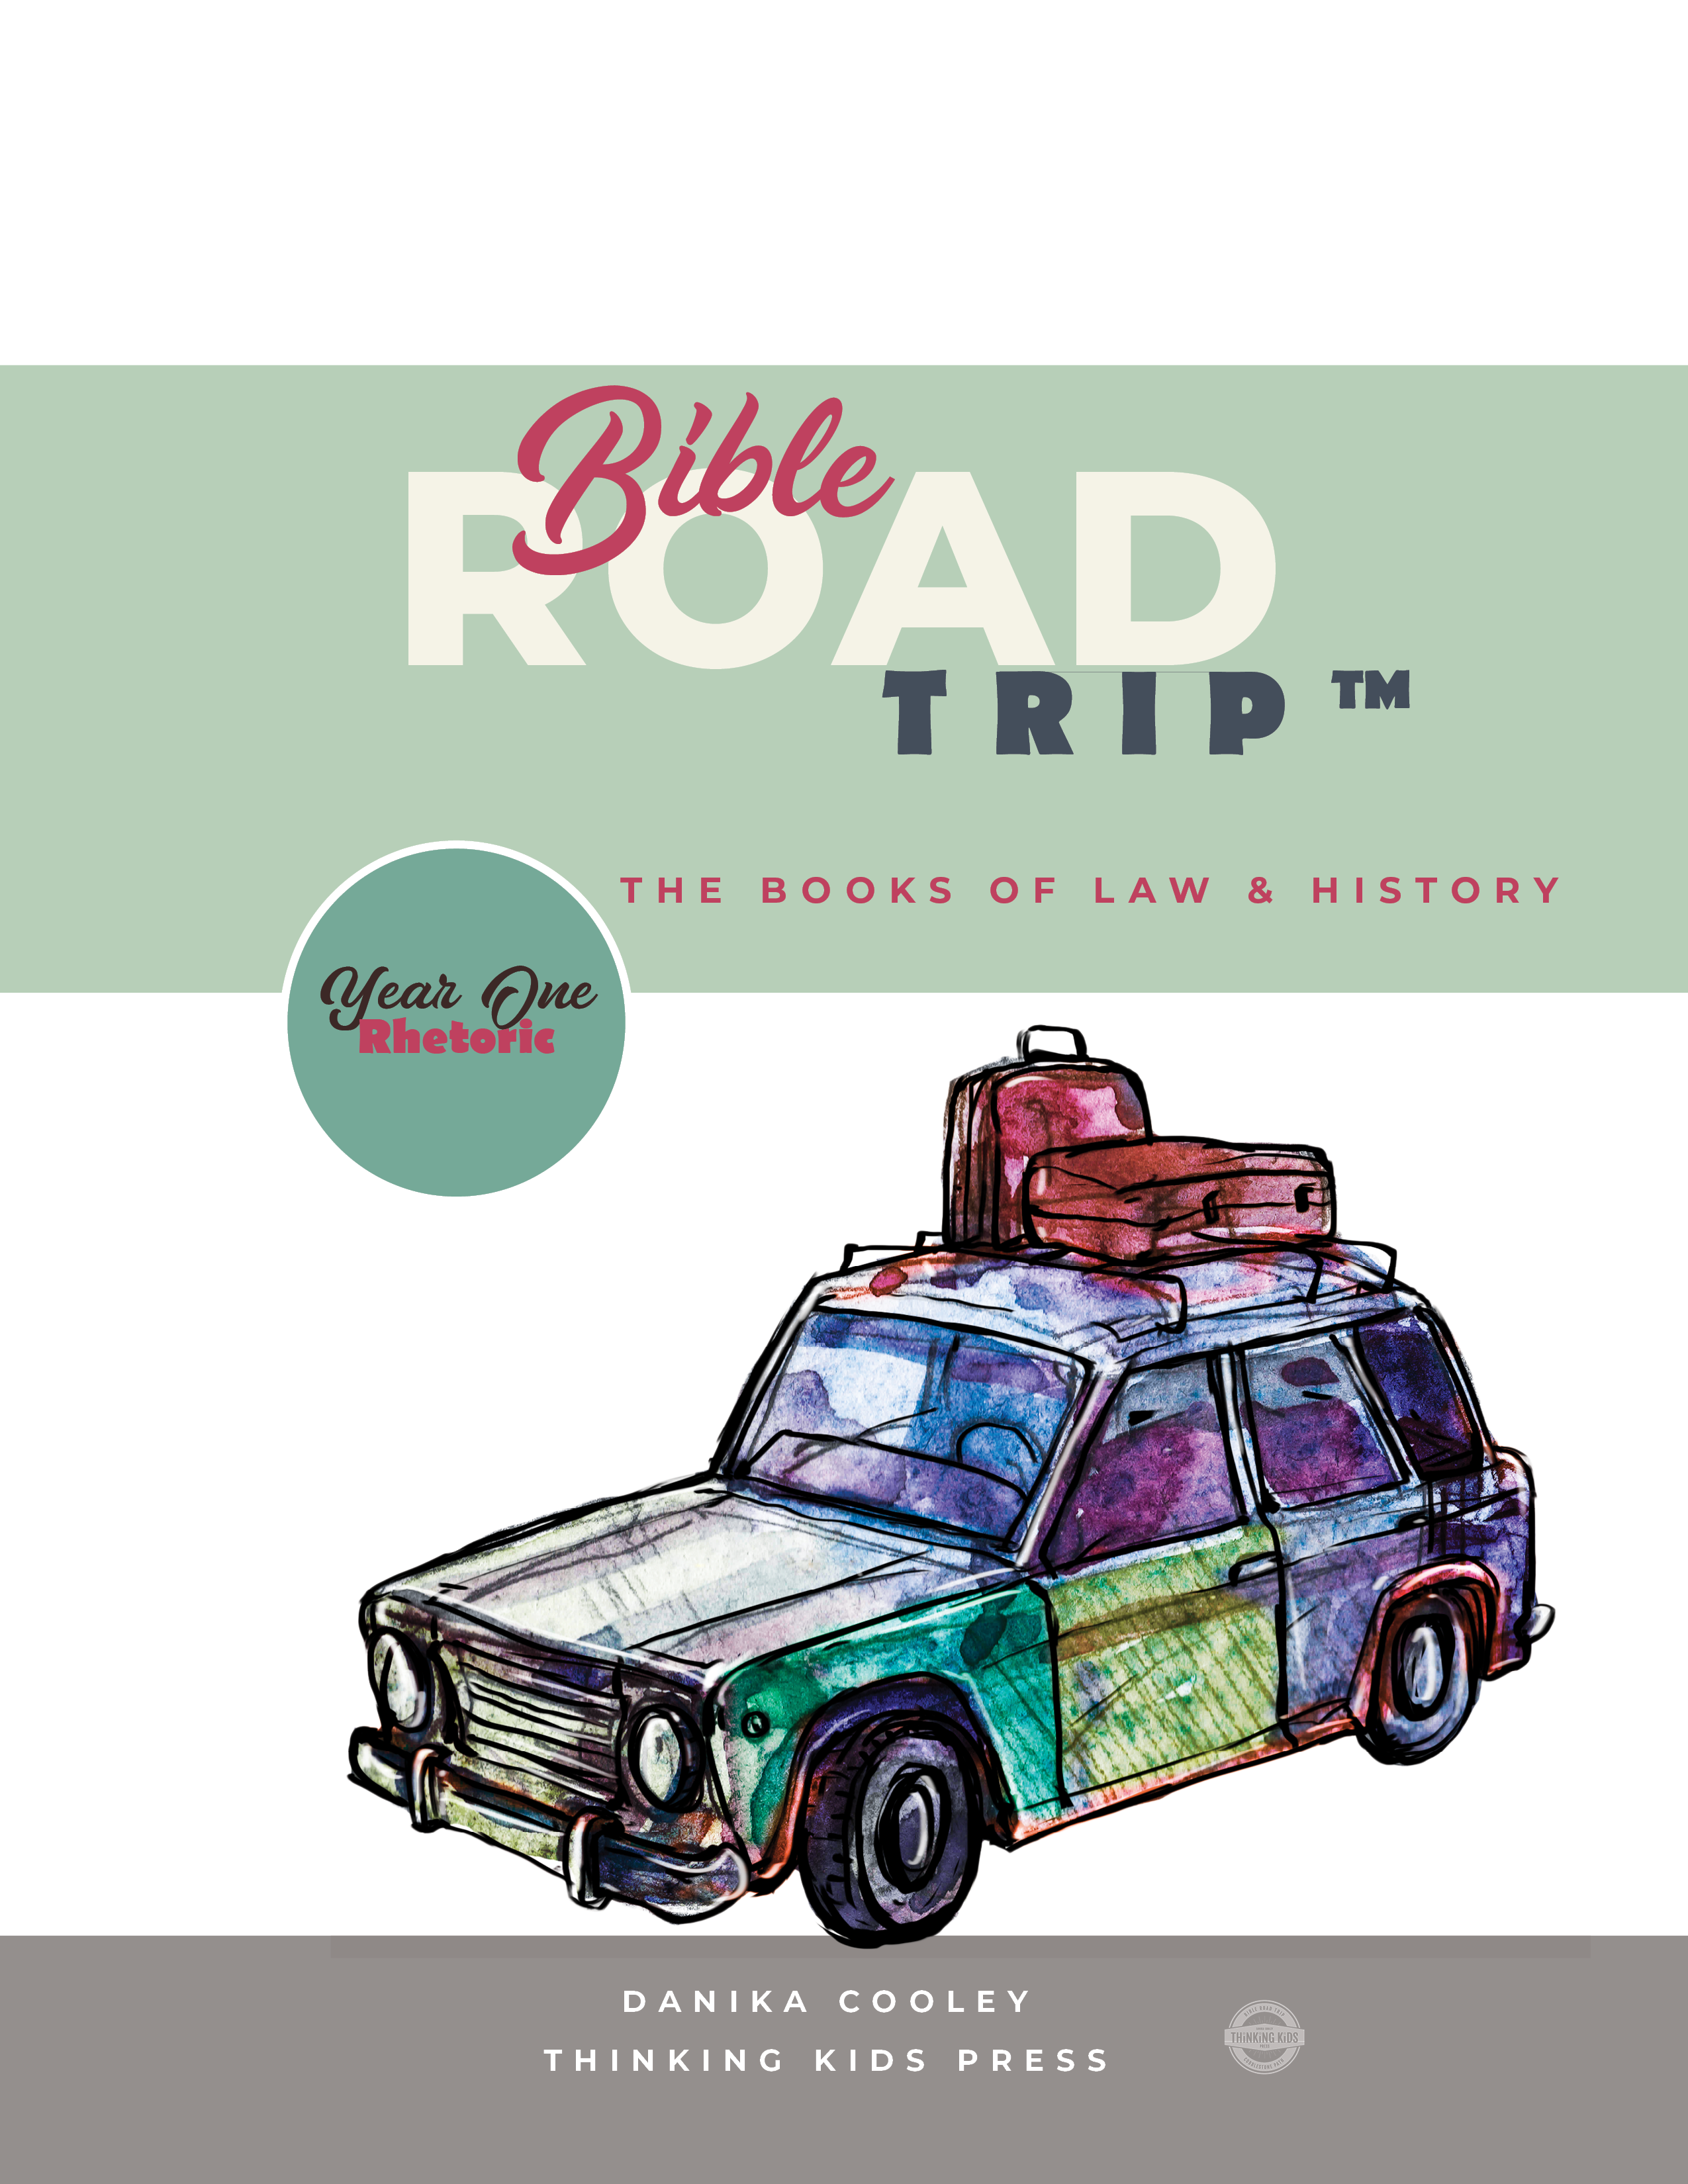 Bible Road Trip™ Year One Rhetoric Curriculum